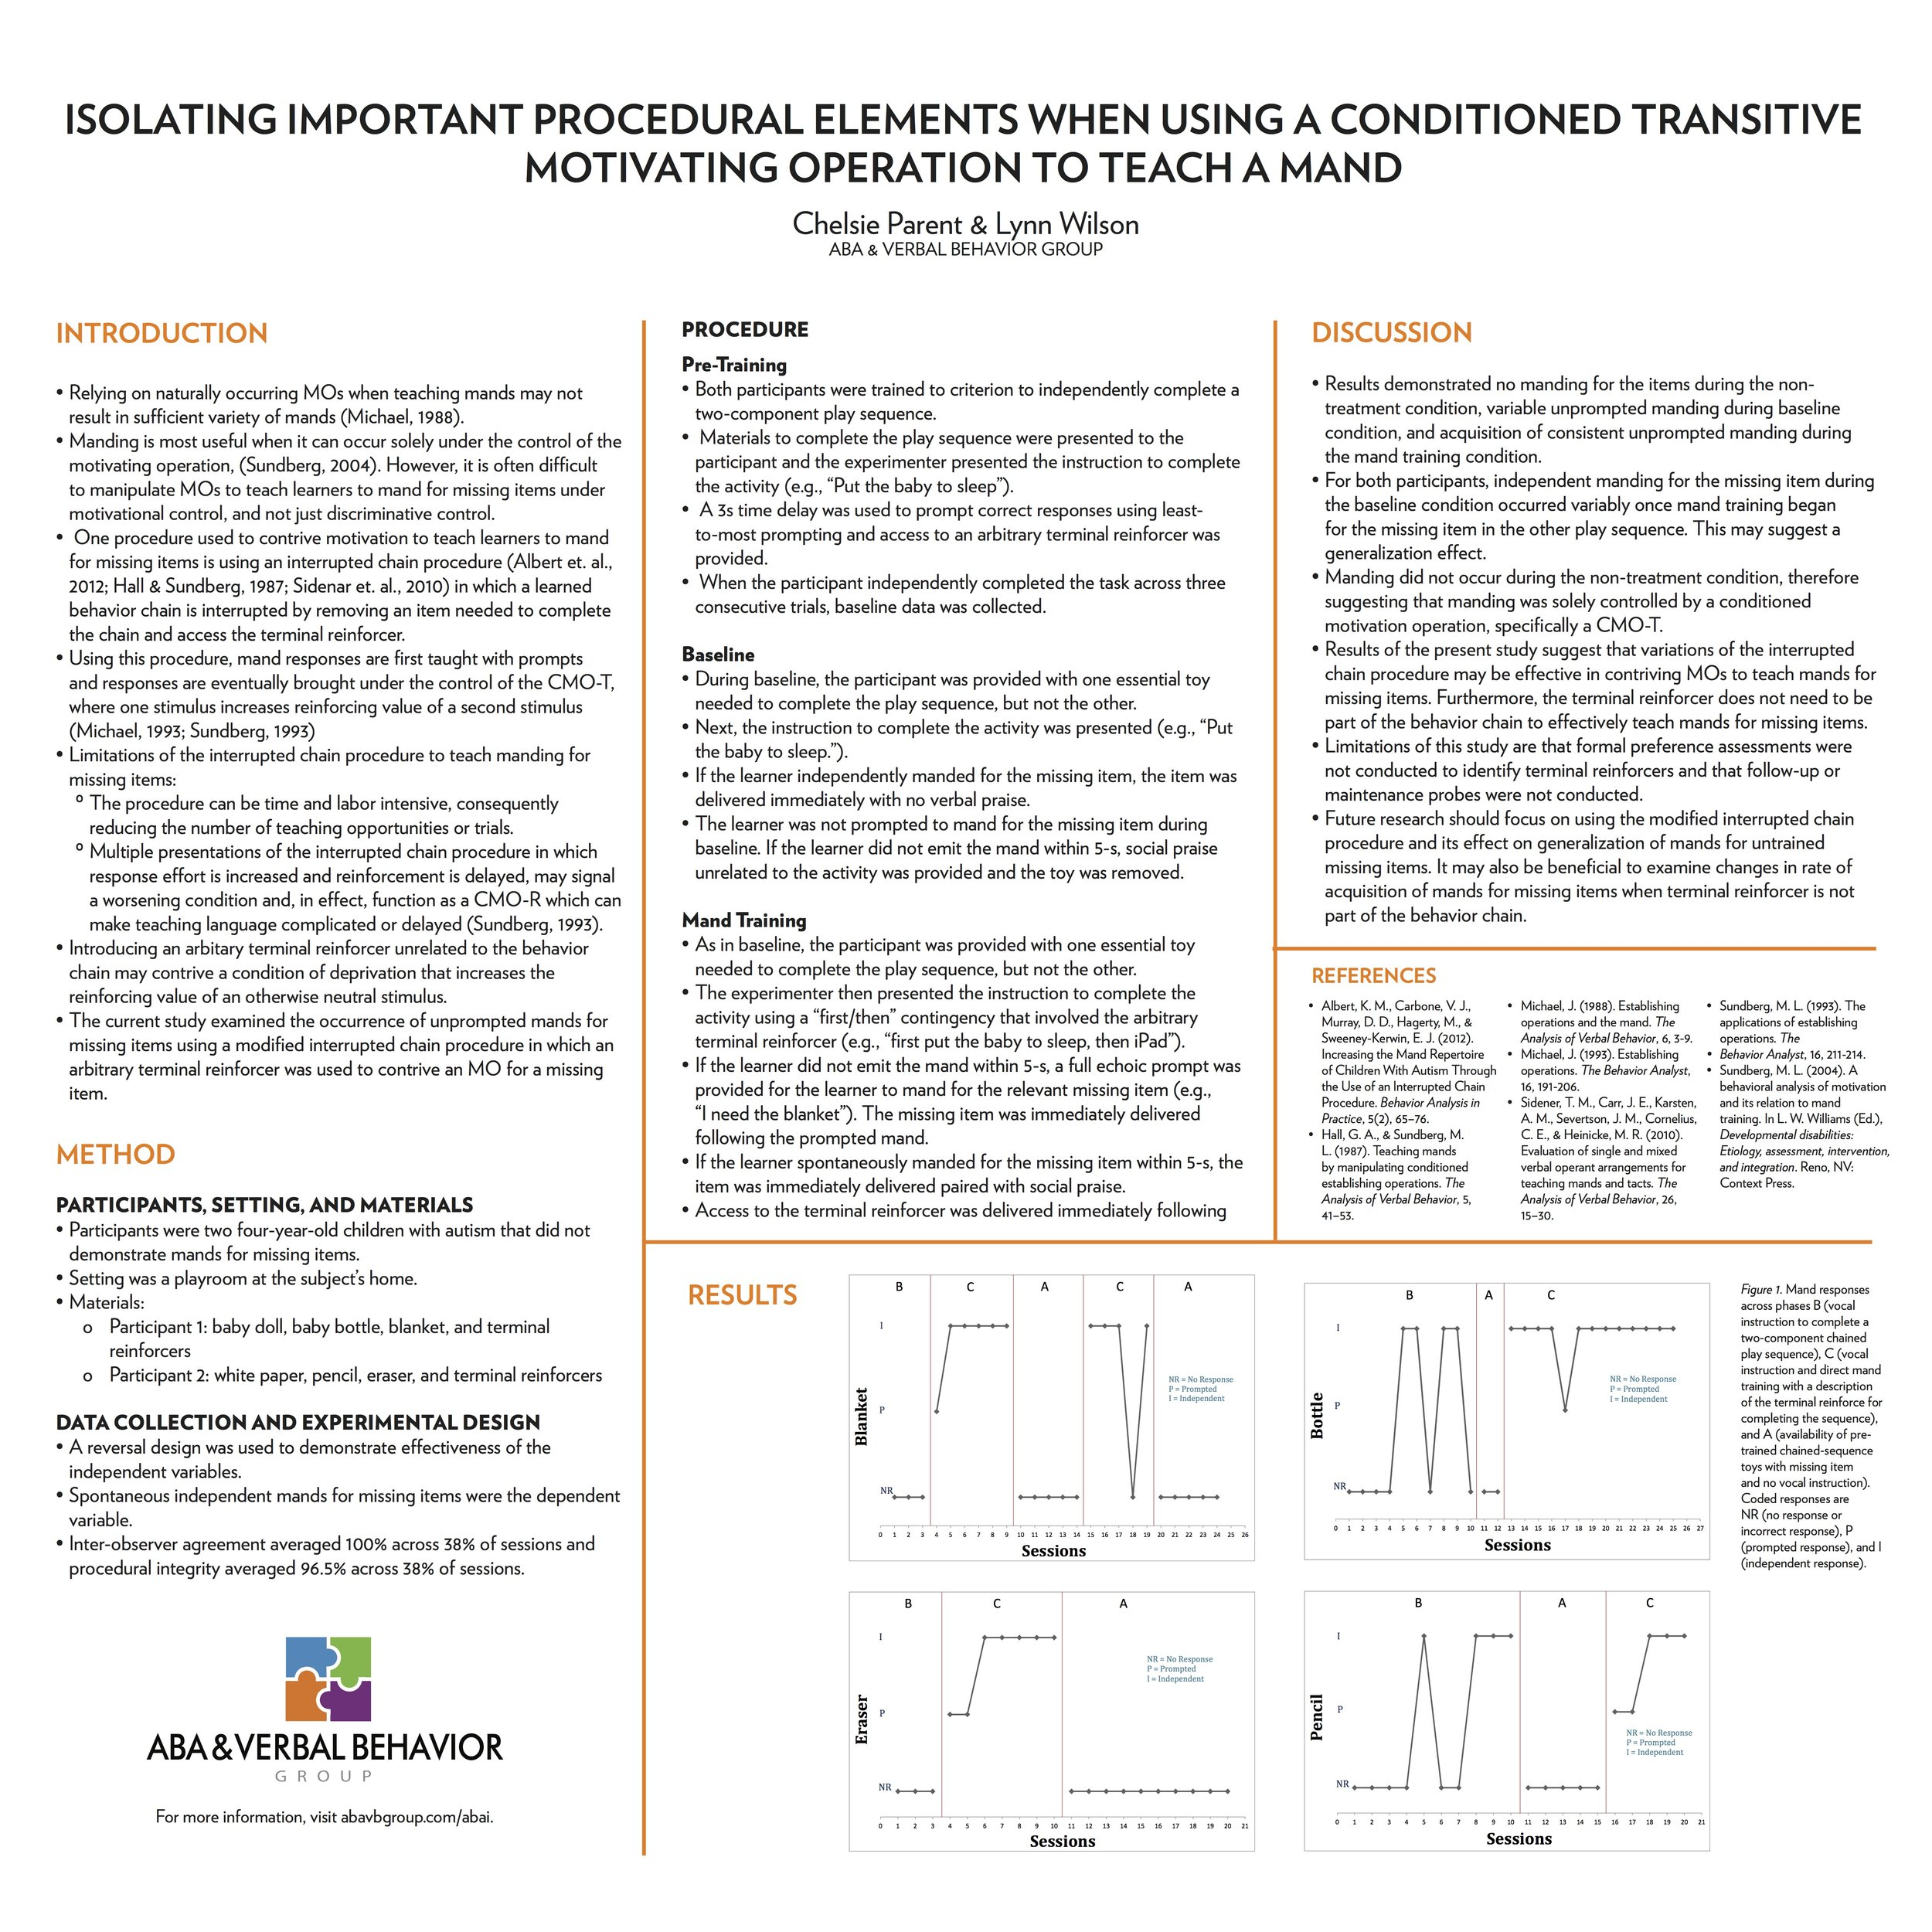 ABAI Poster 201 - Click the button below to download the poster presentation from the Association of Behavior Analysis International conference.